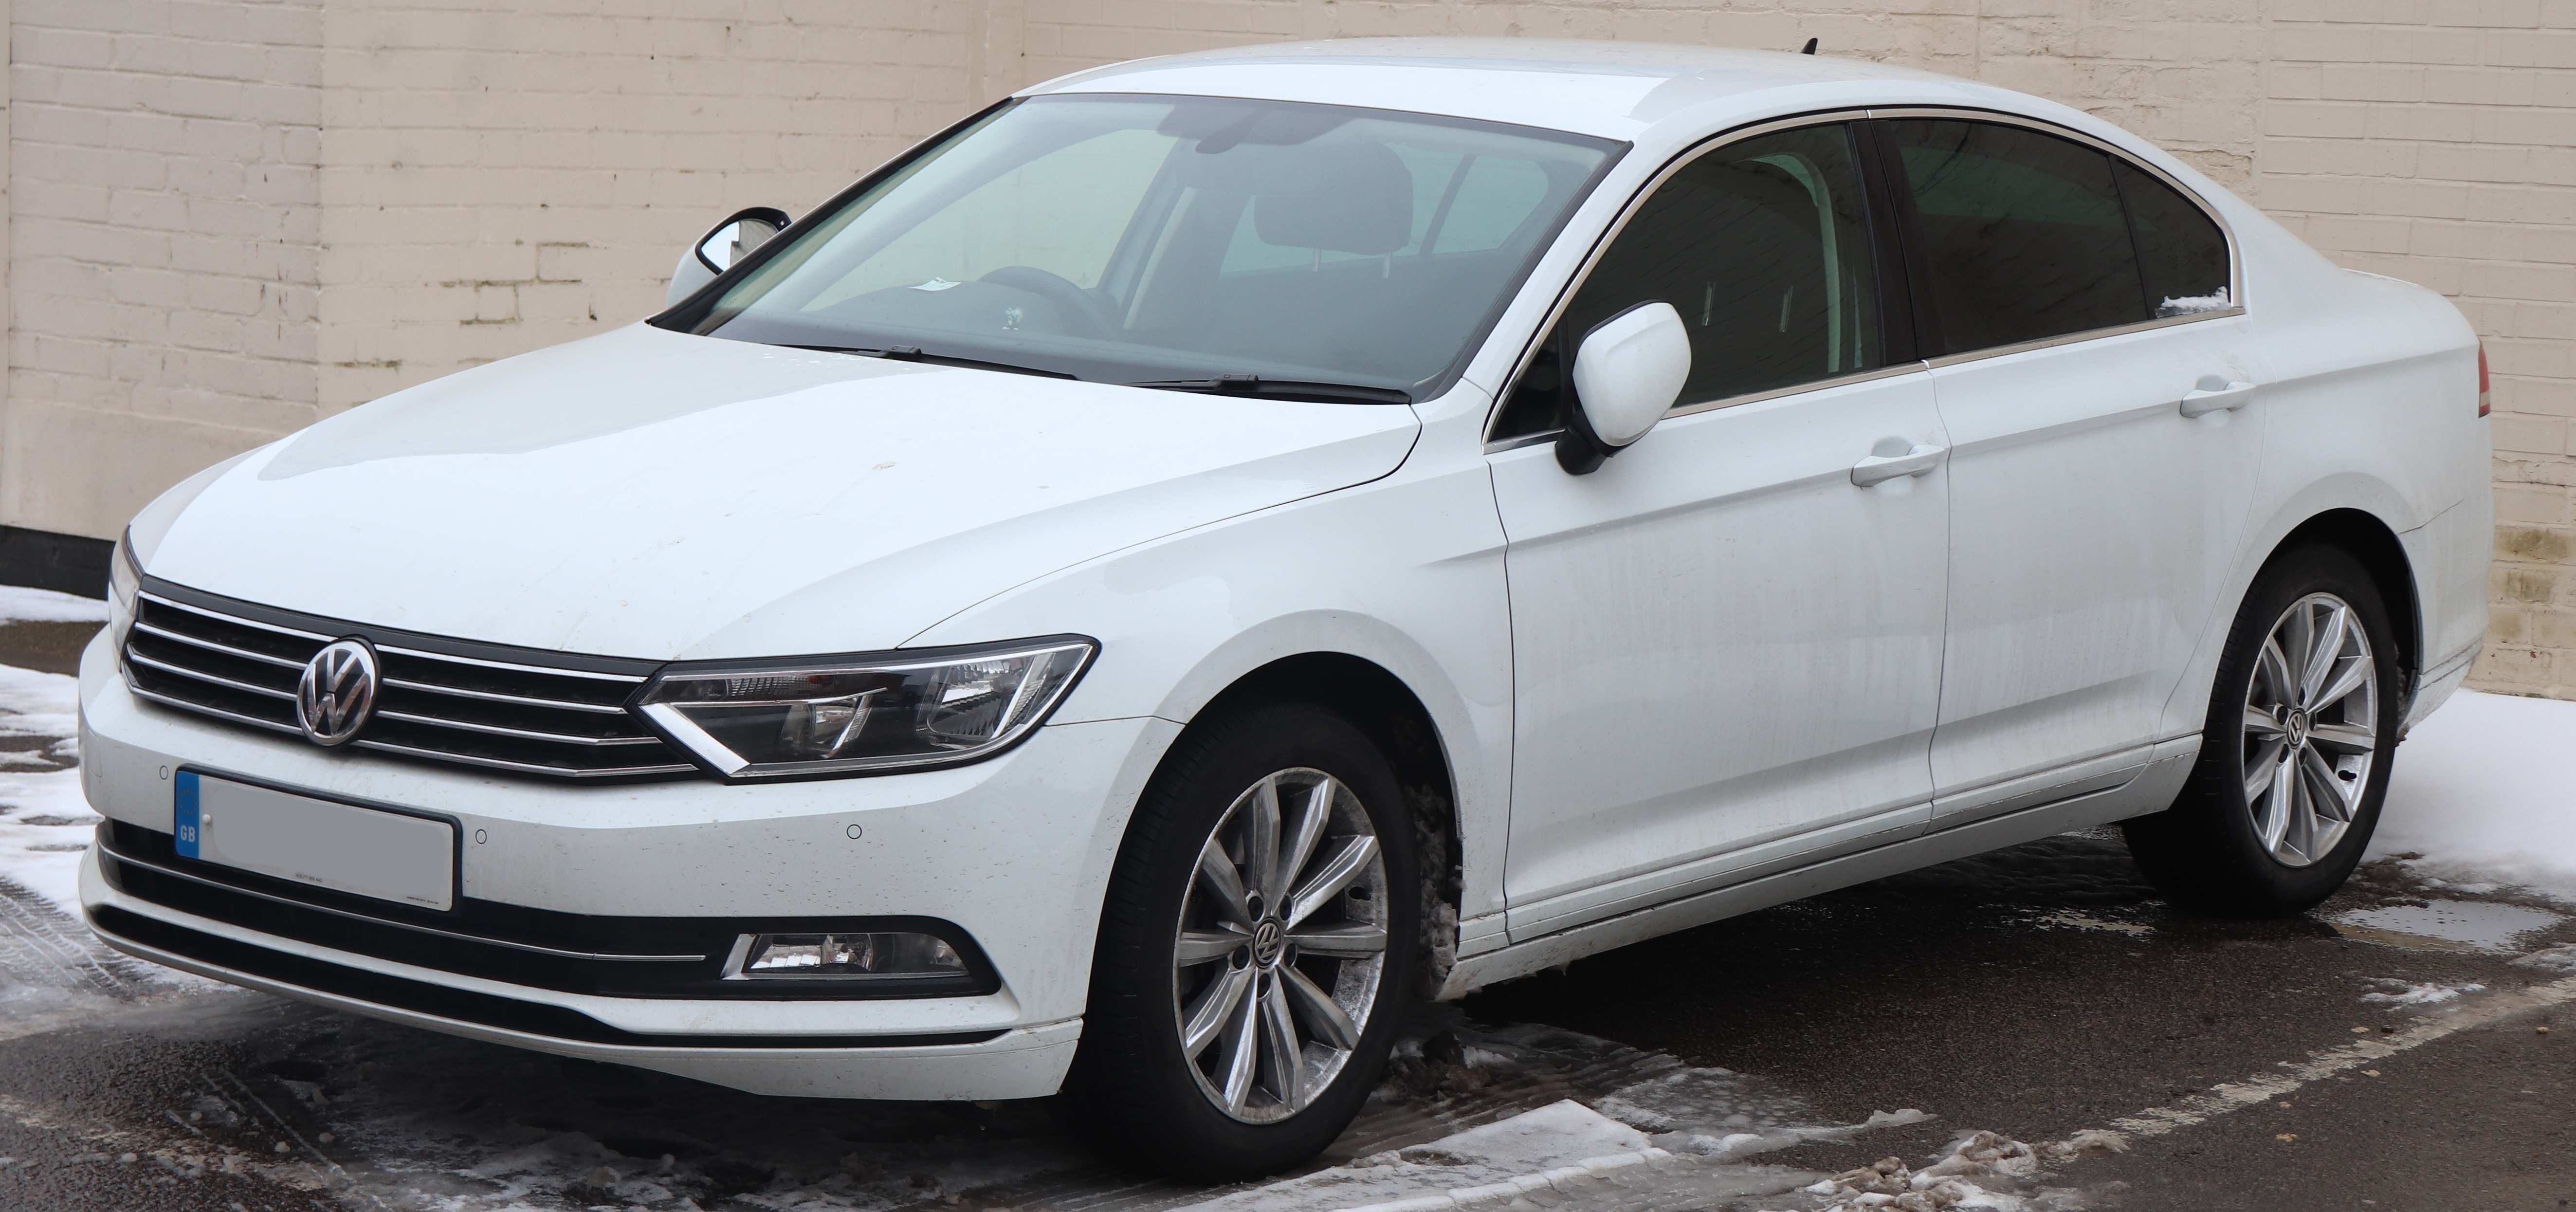 21 New Vw Passat Gt 2019 Specs And Review